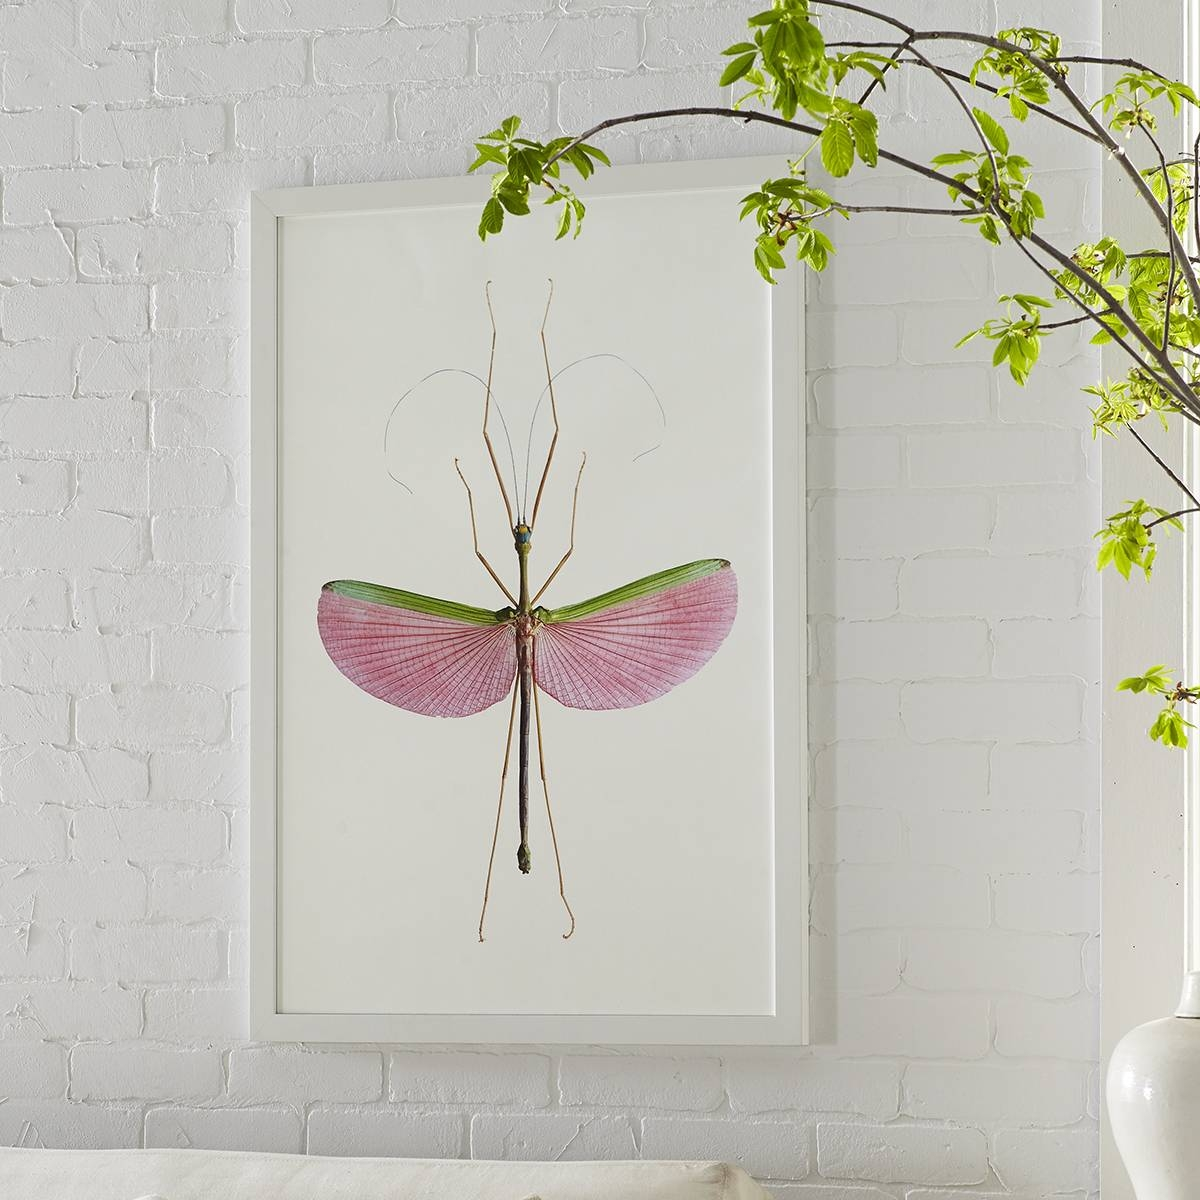 Stick Insect Wall Art – Watermelon | Wisteria Intended For Recent Insect Wall Art (View 22 of 30)